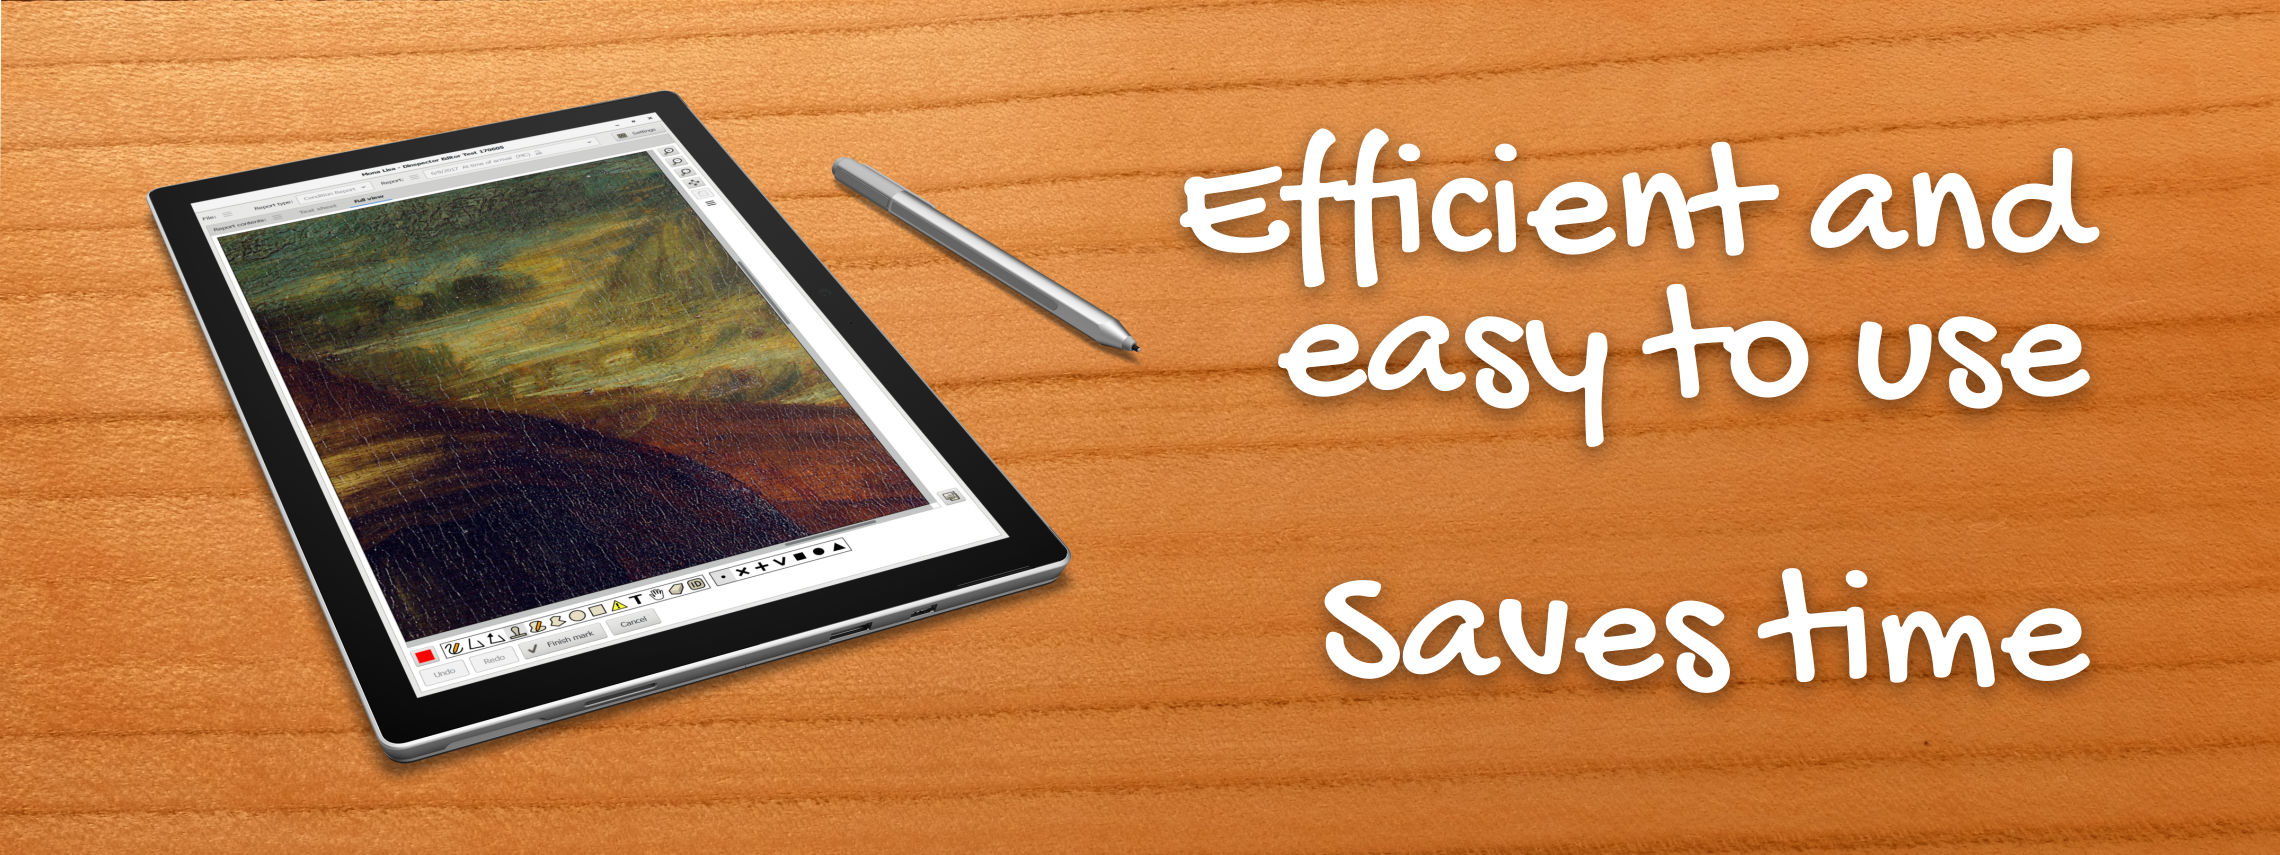 Efficient and easy to use. Saves time.